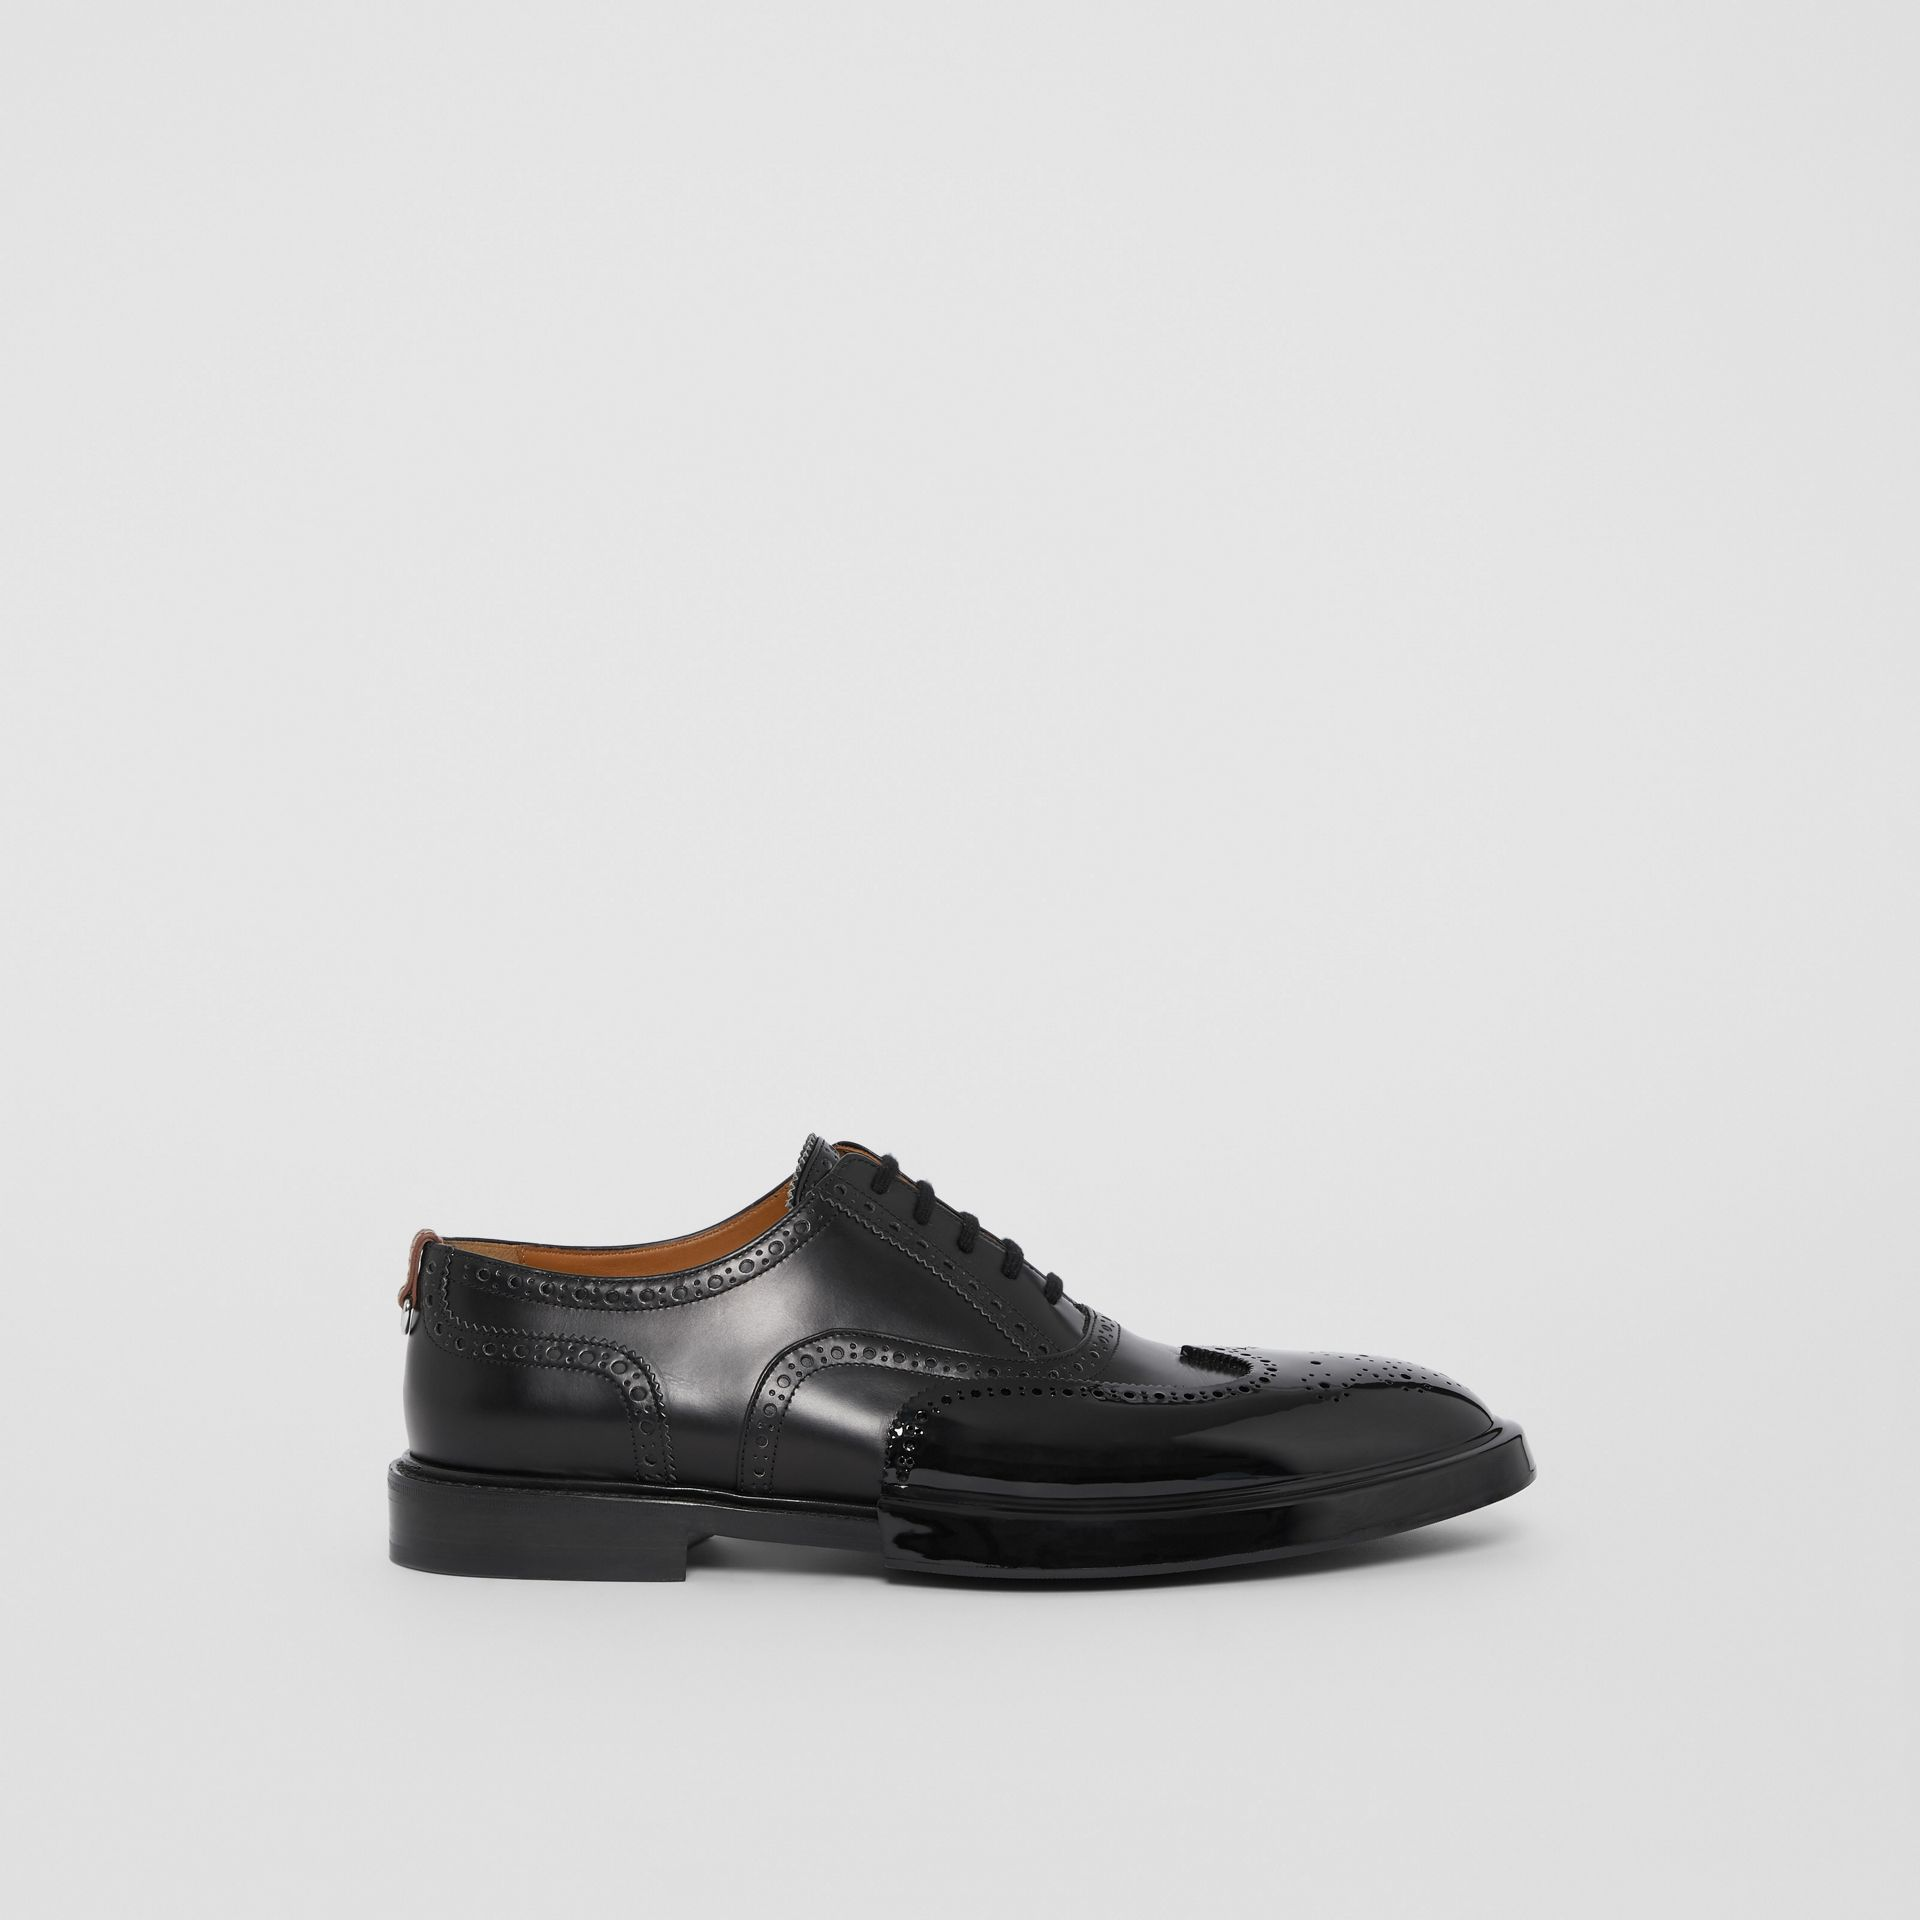 Toe Cap Detail Leather Oxford Brogues in Black - Men | Burberry Hong Kong S.A.R - gallery image 5